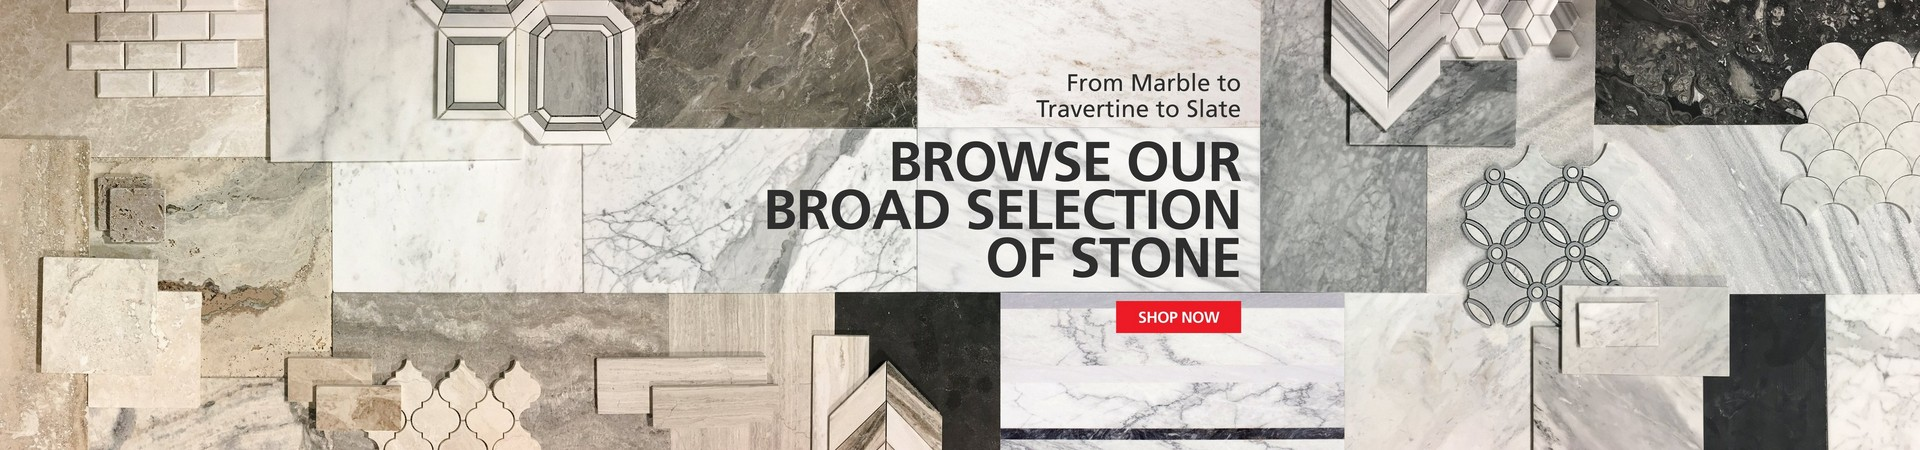 Over 400 Styles of Stone